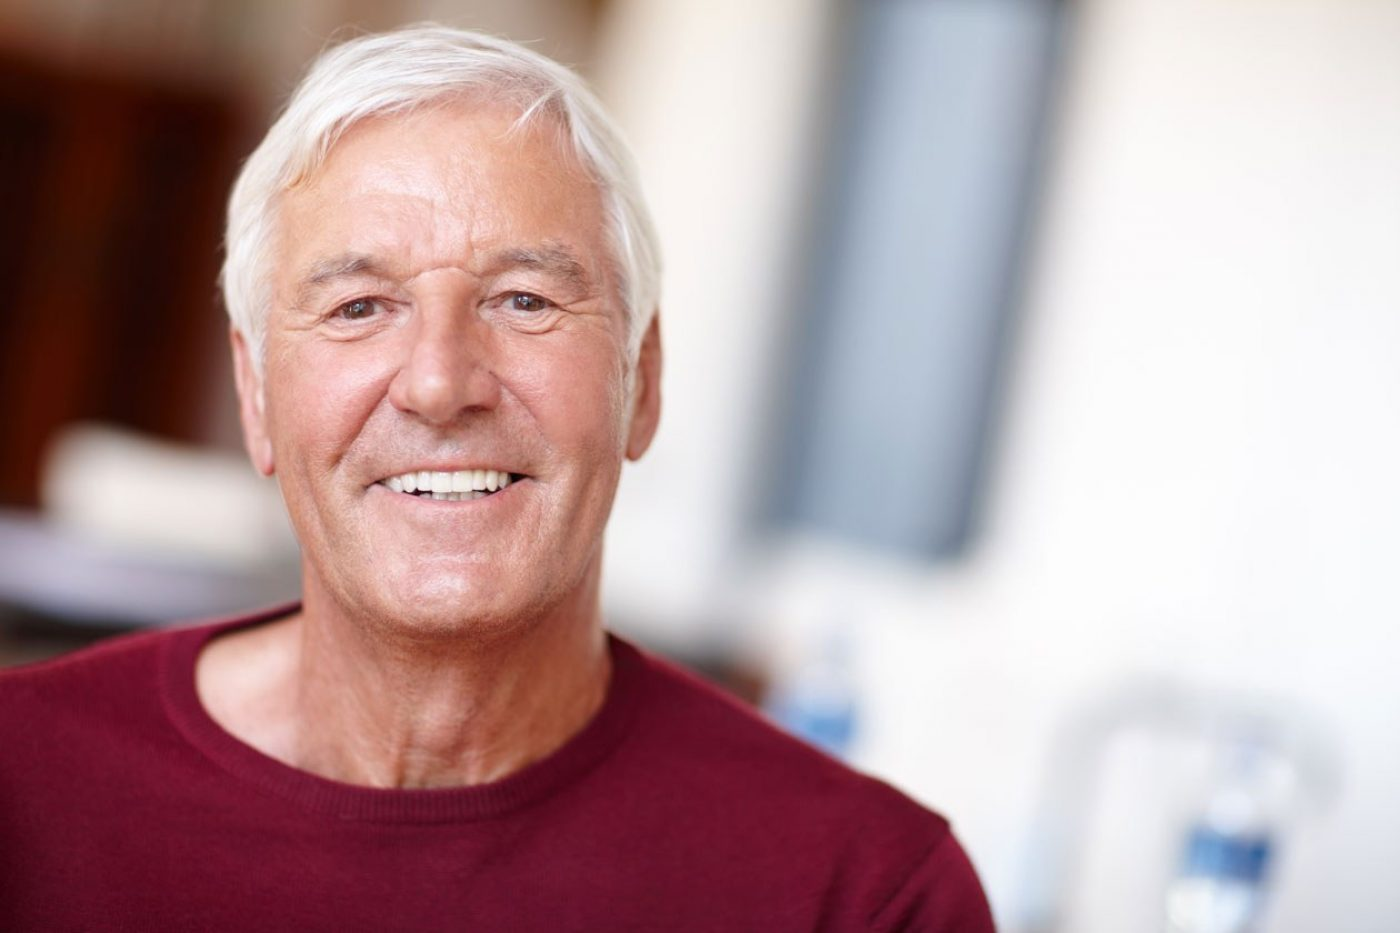 Dental Implants Implantsecureddentures Durham City Smiles